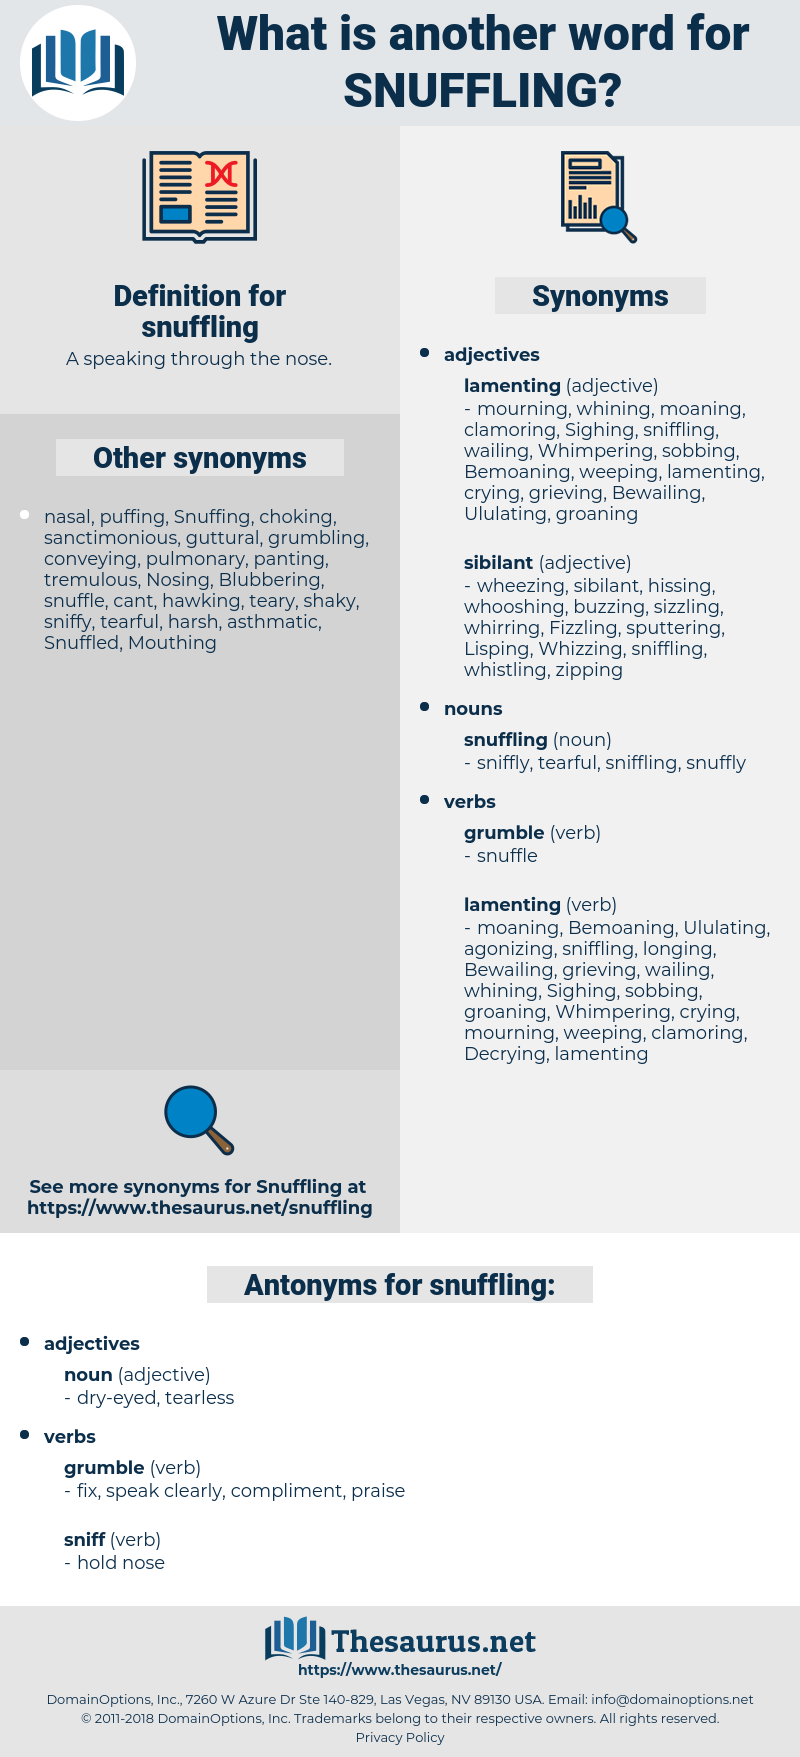 snuffling, synonym snuffling, another word for snuffling, words like snuffling, thesaurus snuffling